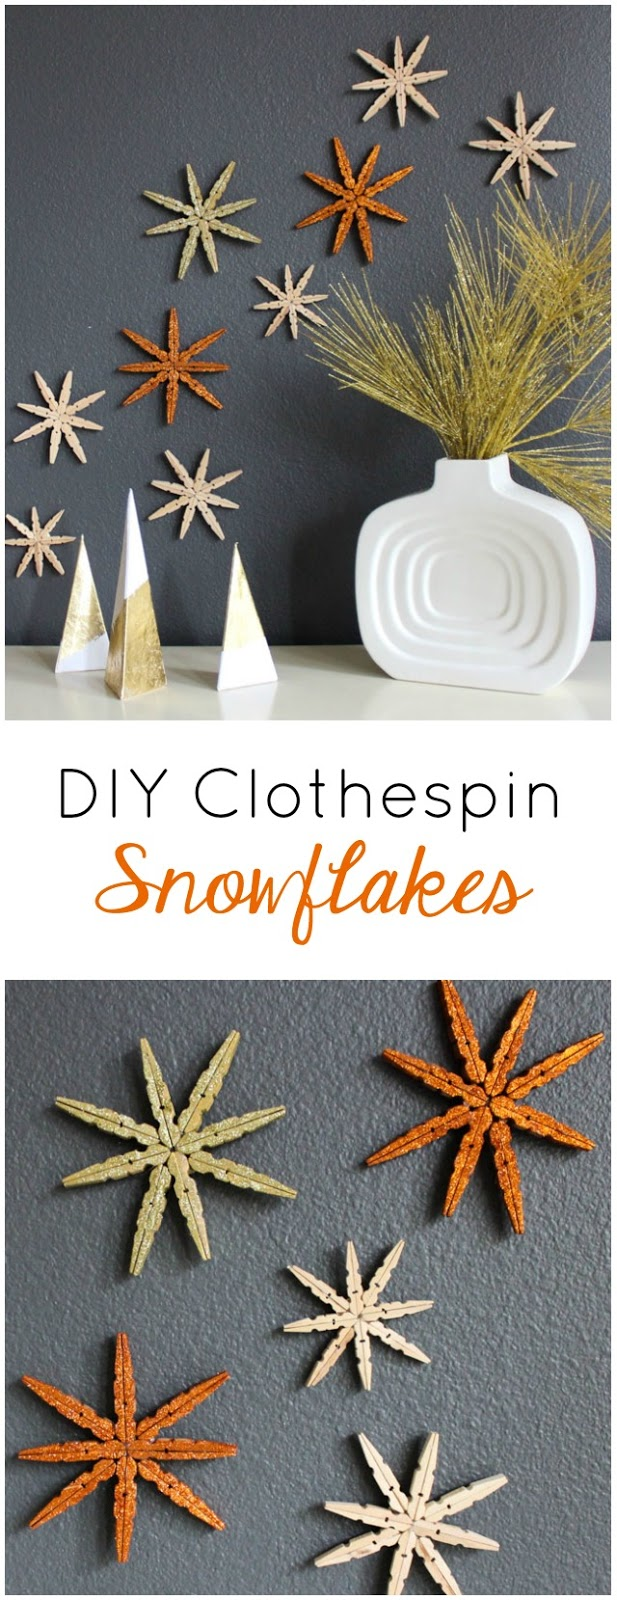 How to make snowflakes from clothespins - so pretty!